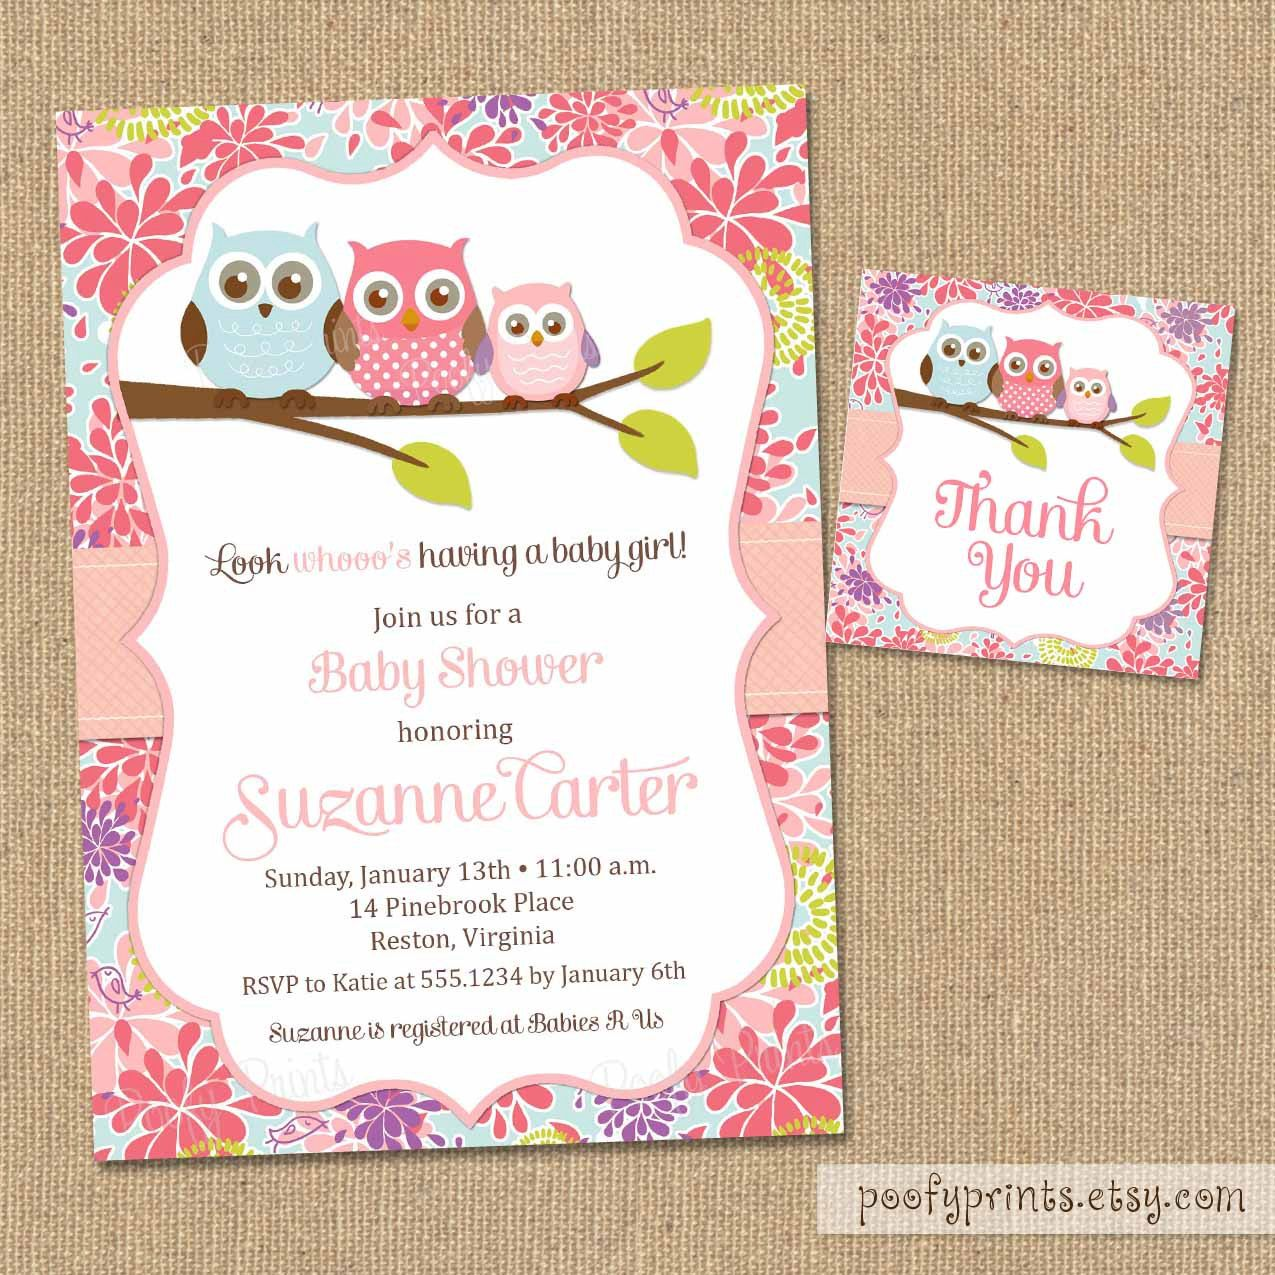 Free Printable Baby Shower Invitations | Invitations Printable Free ...